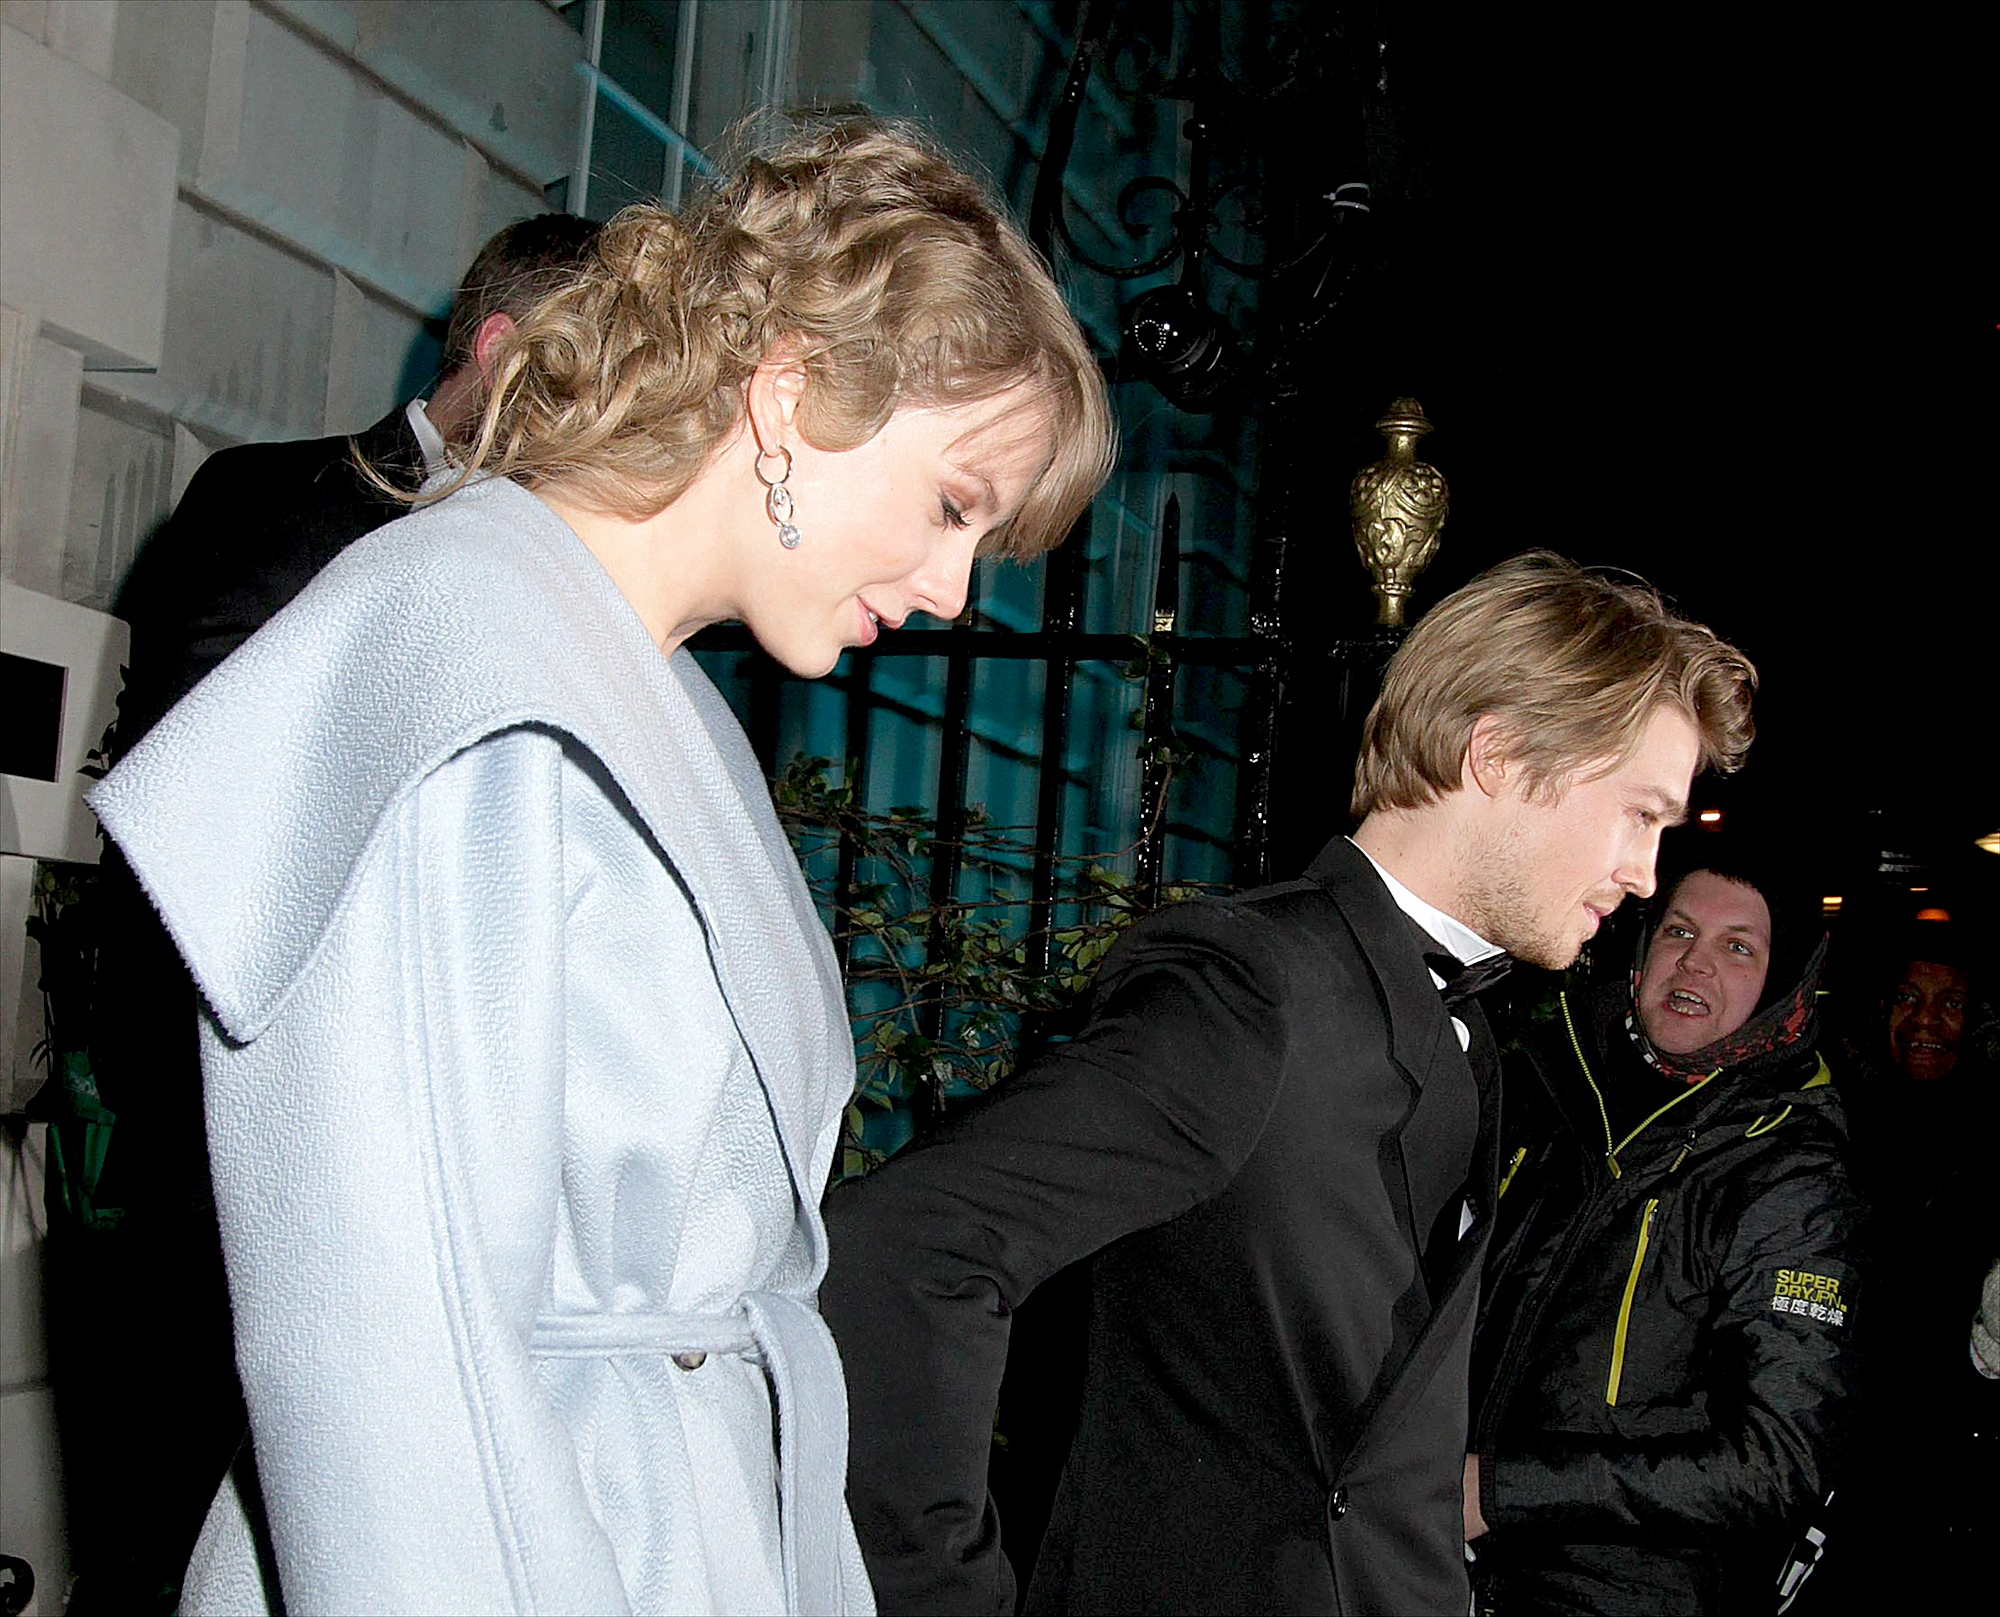 Taylor-Swift-Joe-Alwyn-bafta-after-party-6 - Both Swift and Alwyn took in the night with grins on their face as they appeared to not be bothered by the rain or the snapping of photos.